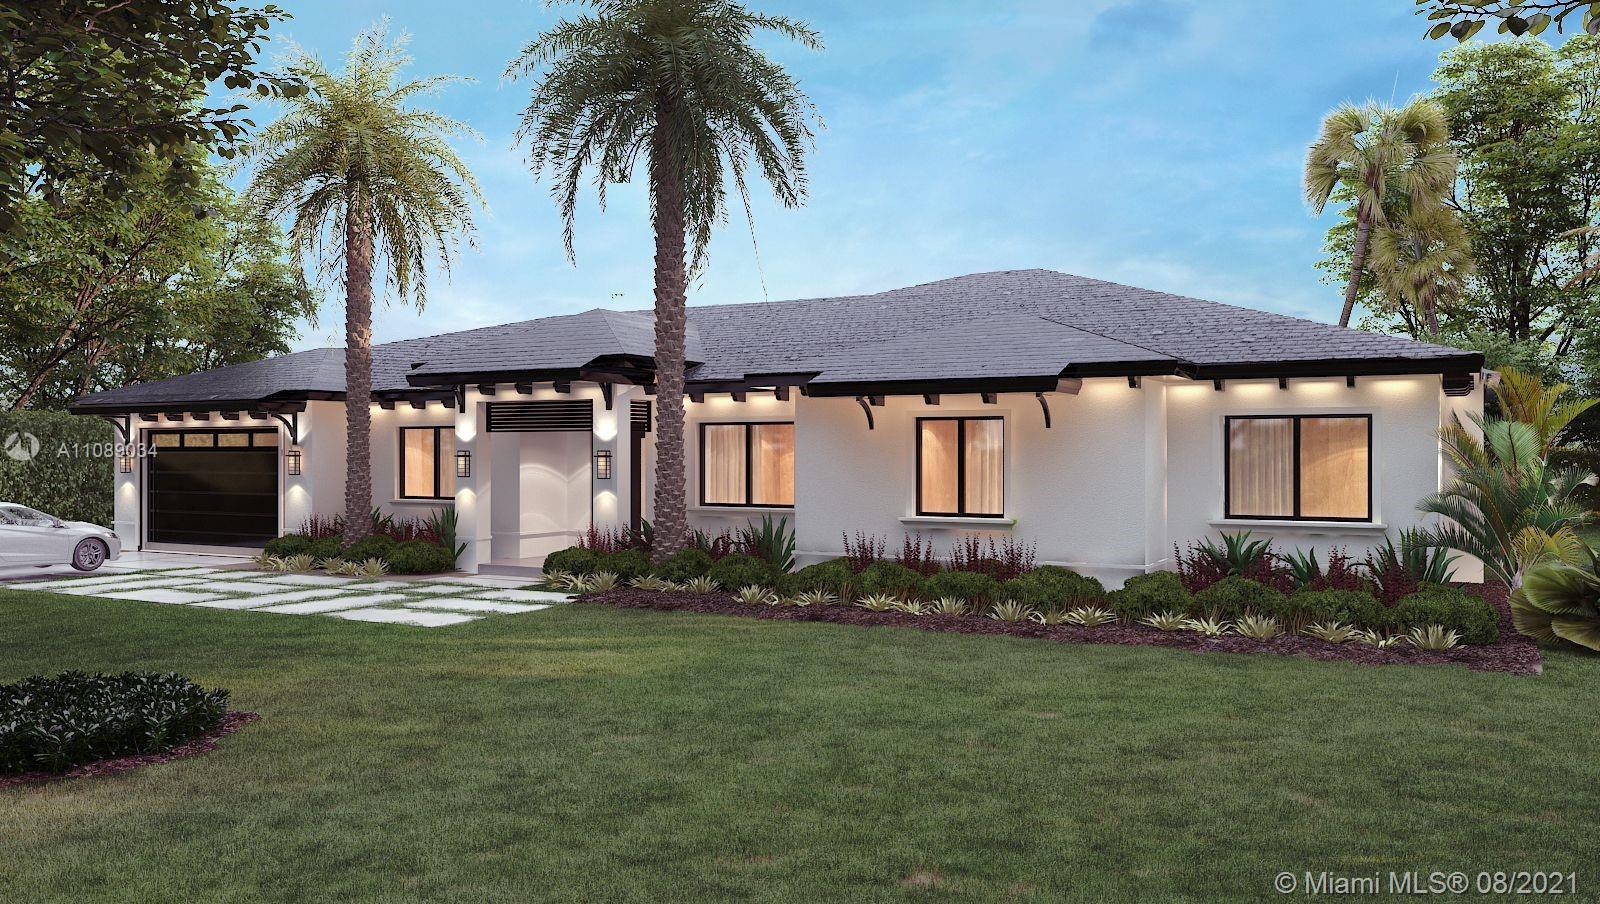 NEW CONSTRUCTION!!!!  In Pinecrest. This 5 BR, 6Bath, 1 Story residence, smart home ready, 2 Car Garage, Pool, Gourmet Kitchen, Integrated Top of the line Appliances (Wolf & Sub-zero), 24X48 Porcelain Tile, Quartz countertops, Impact Windows, Lush Landscape, and much much more.